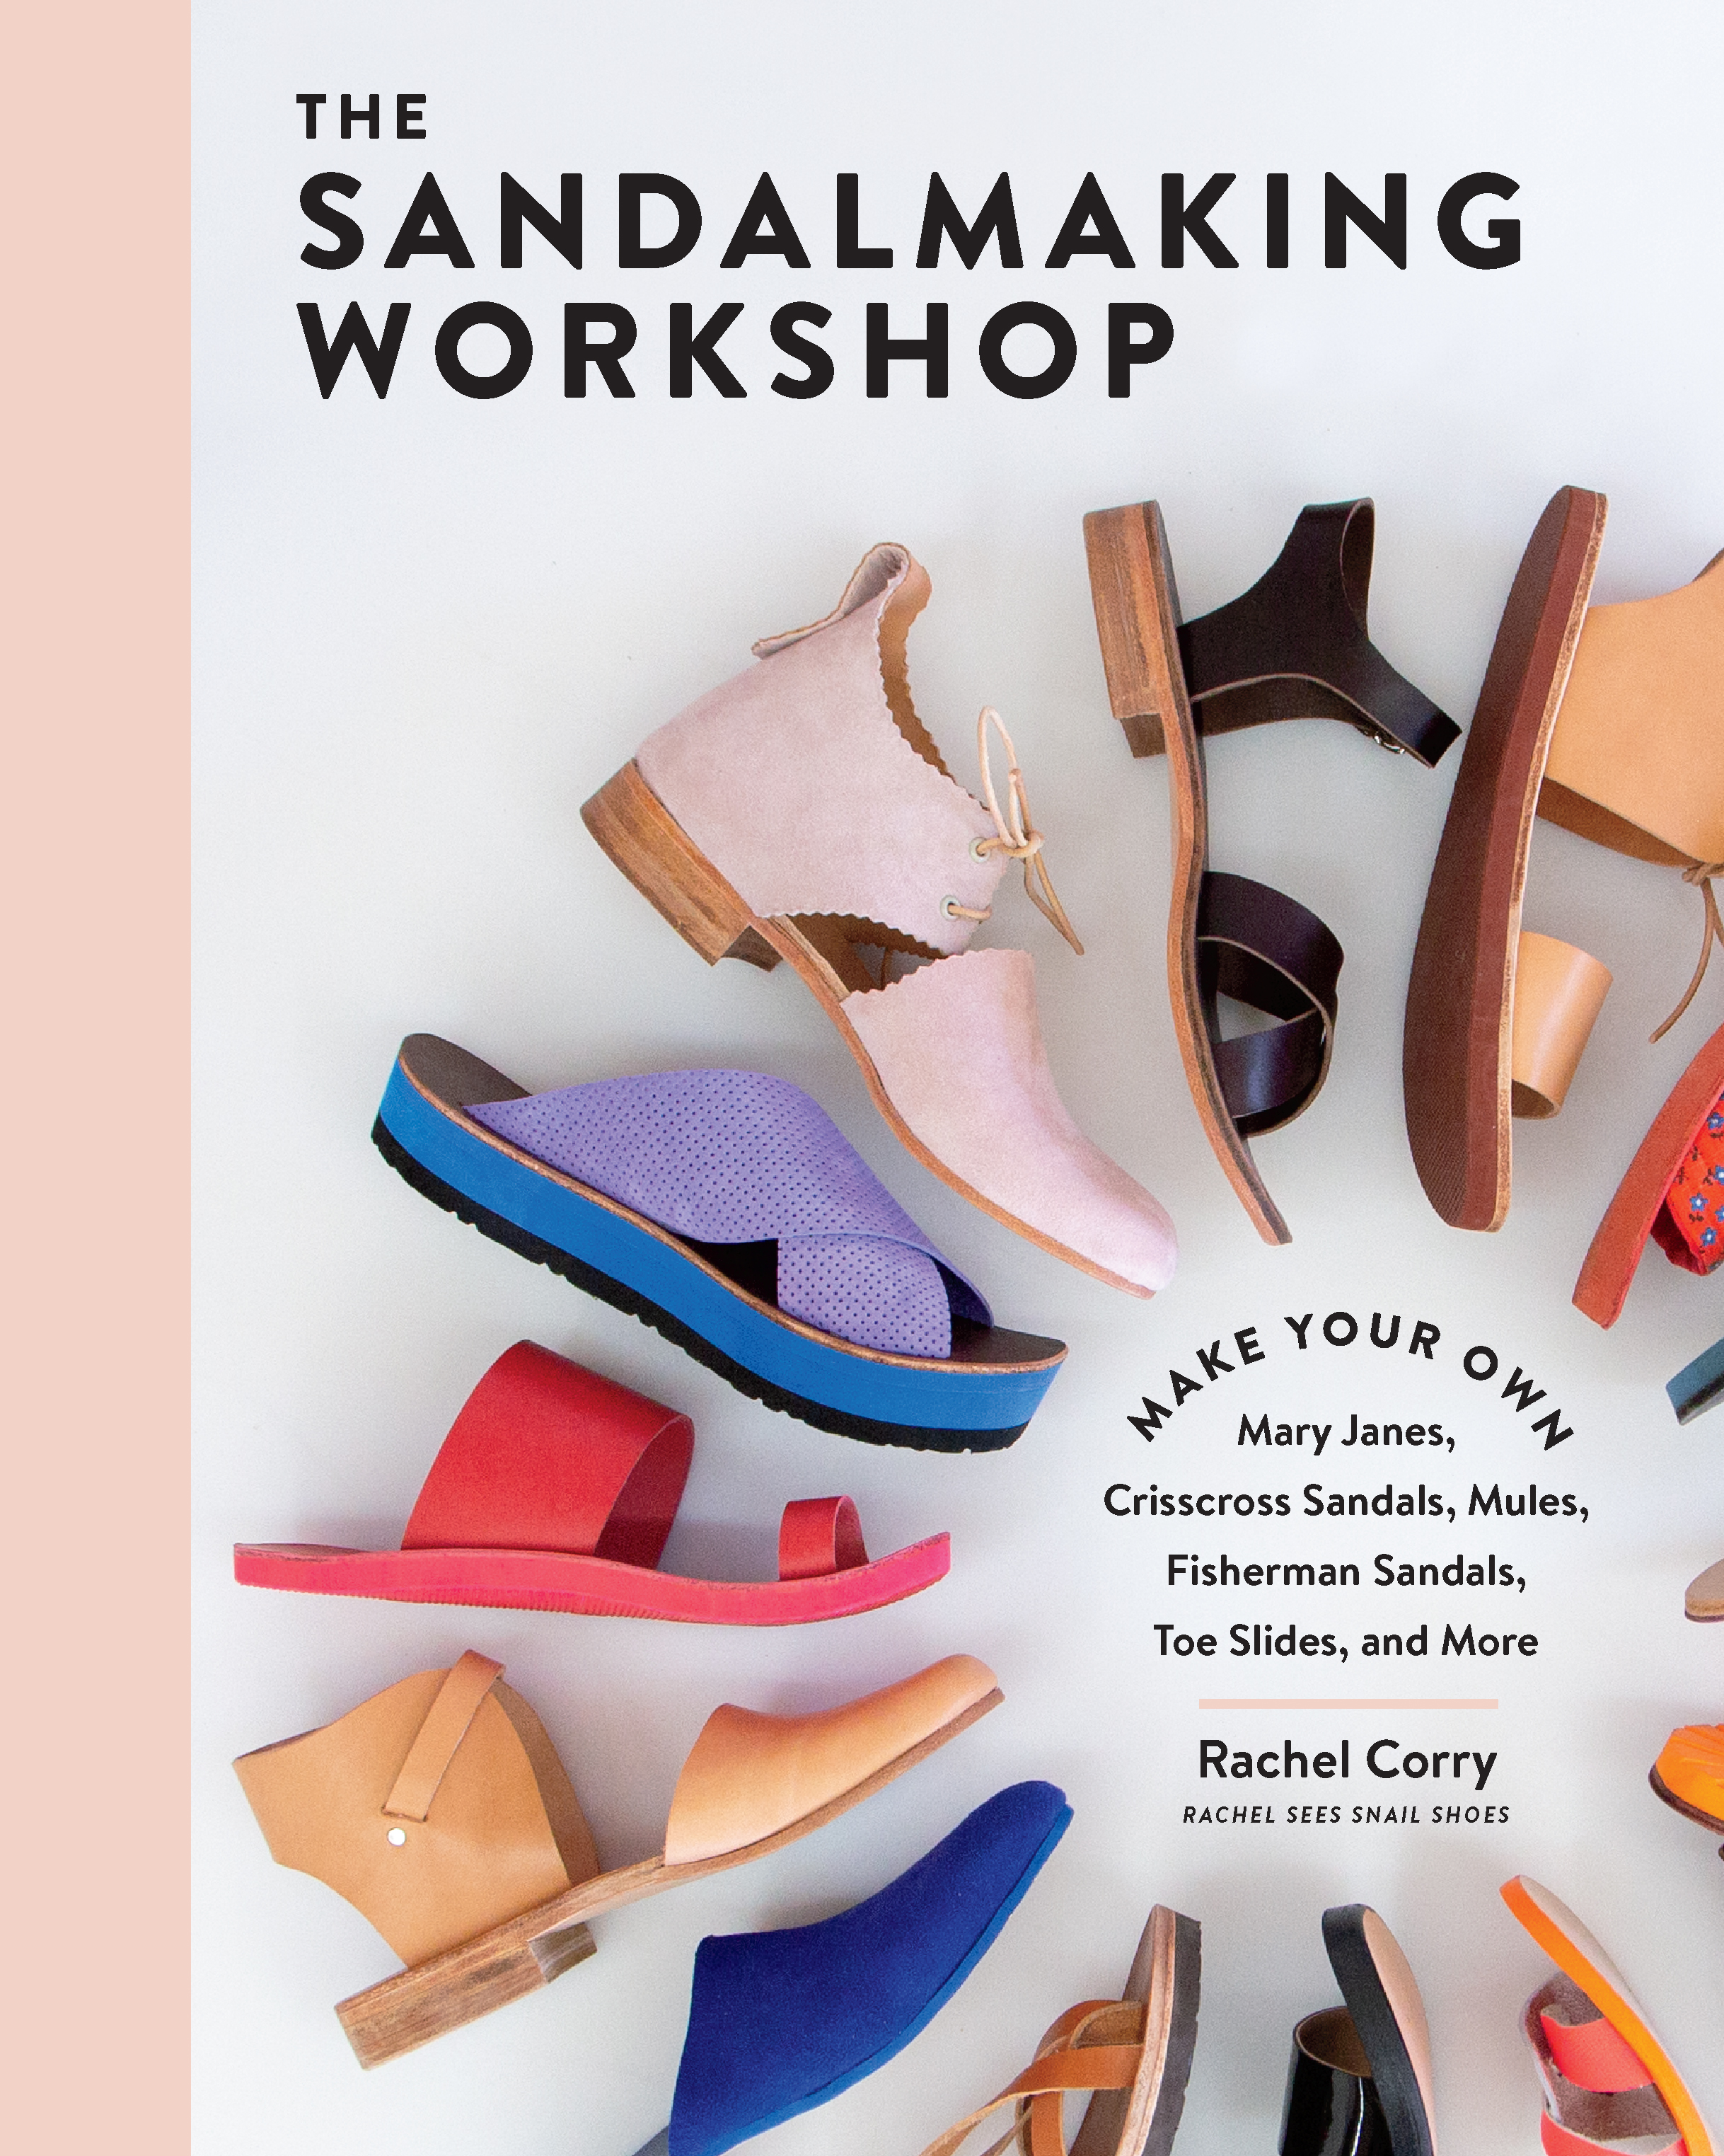 The Sandalmaking Workshop Make Your Own Mary Janes, Crisscross Sandals, Mules, Fisherman Sandals, Toe Slides, and More - Rachel Corry